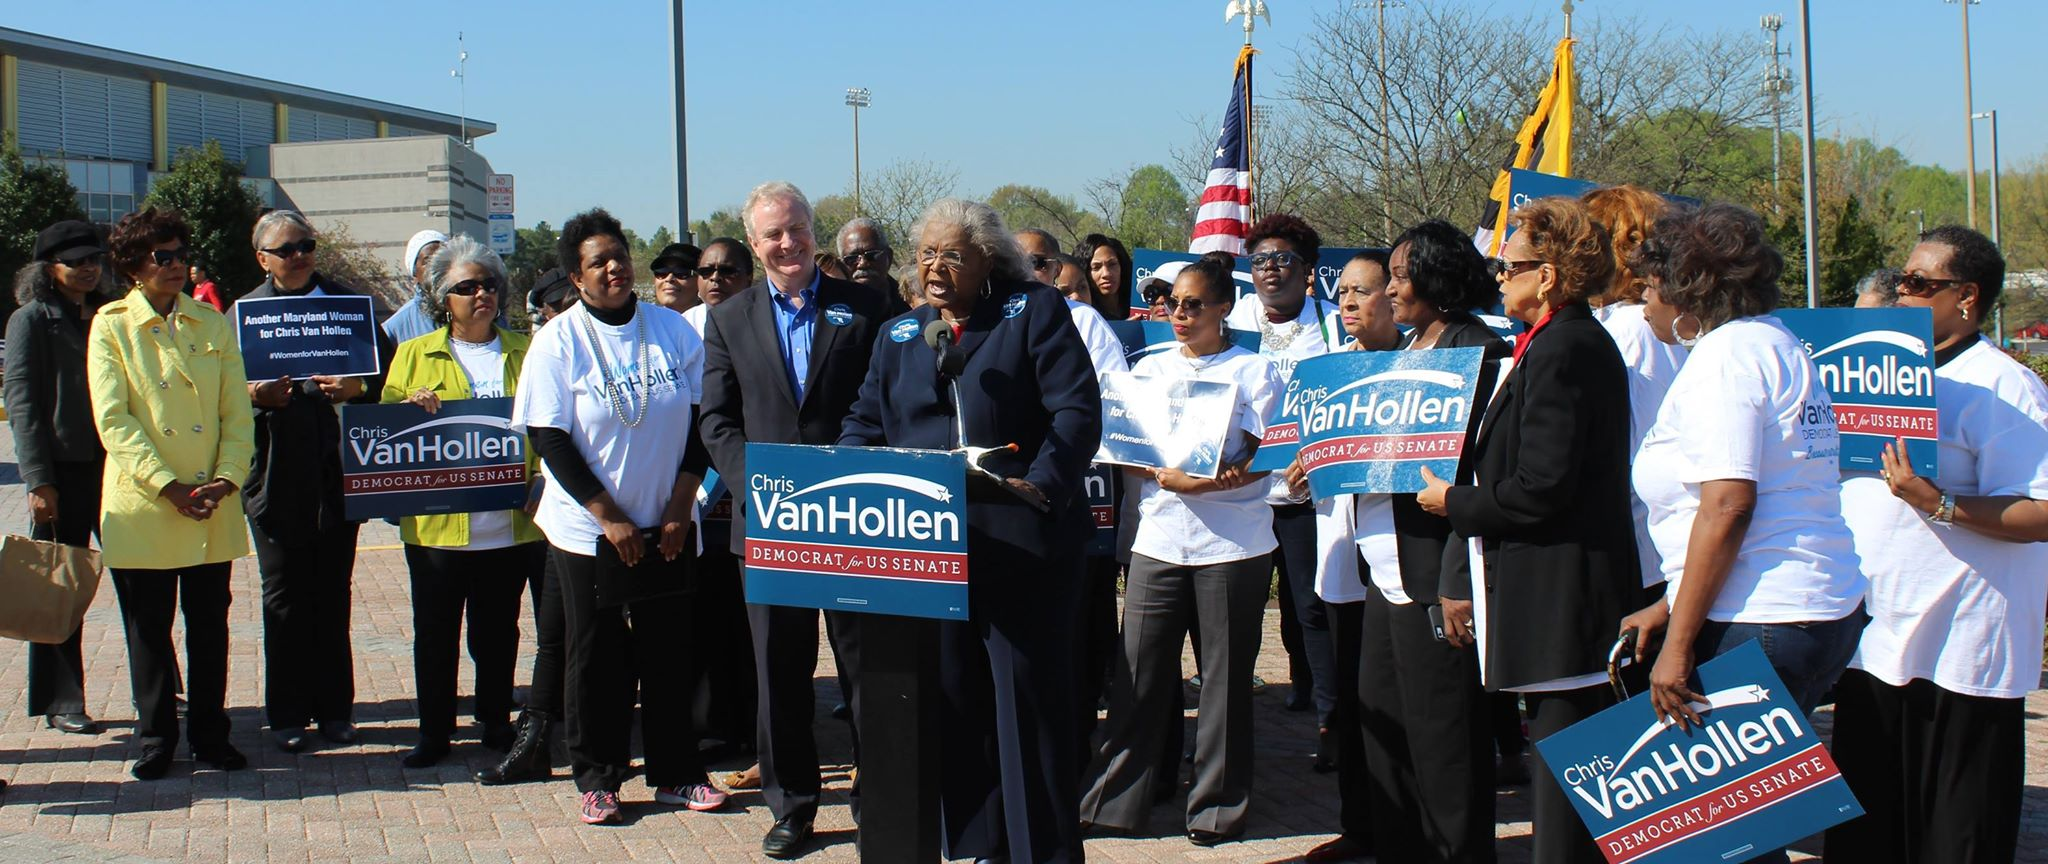 100 African American Women Leaders from Maryland for Van Hollen